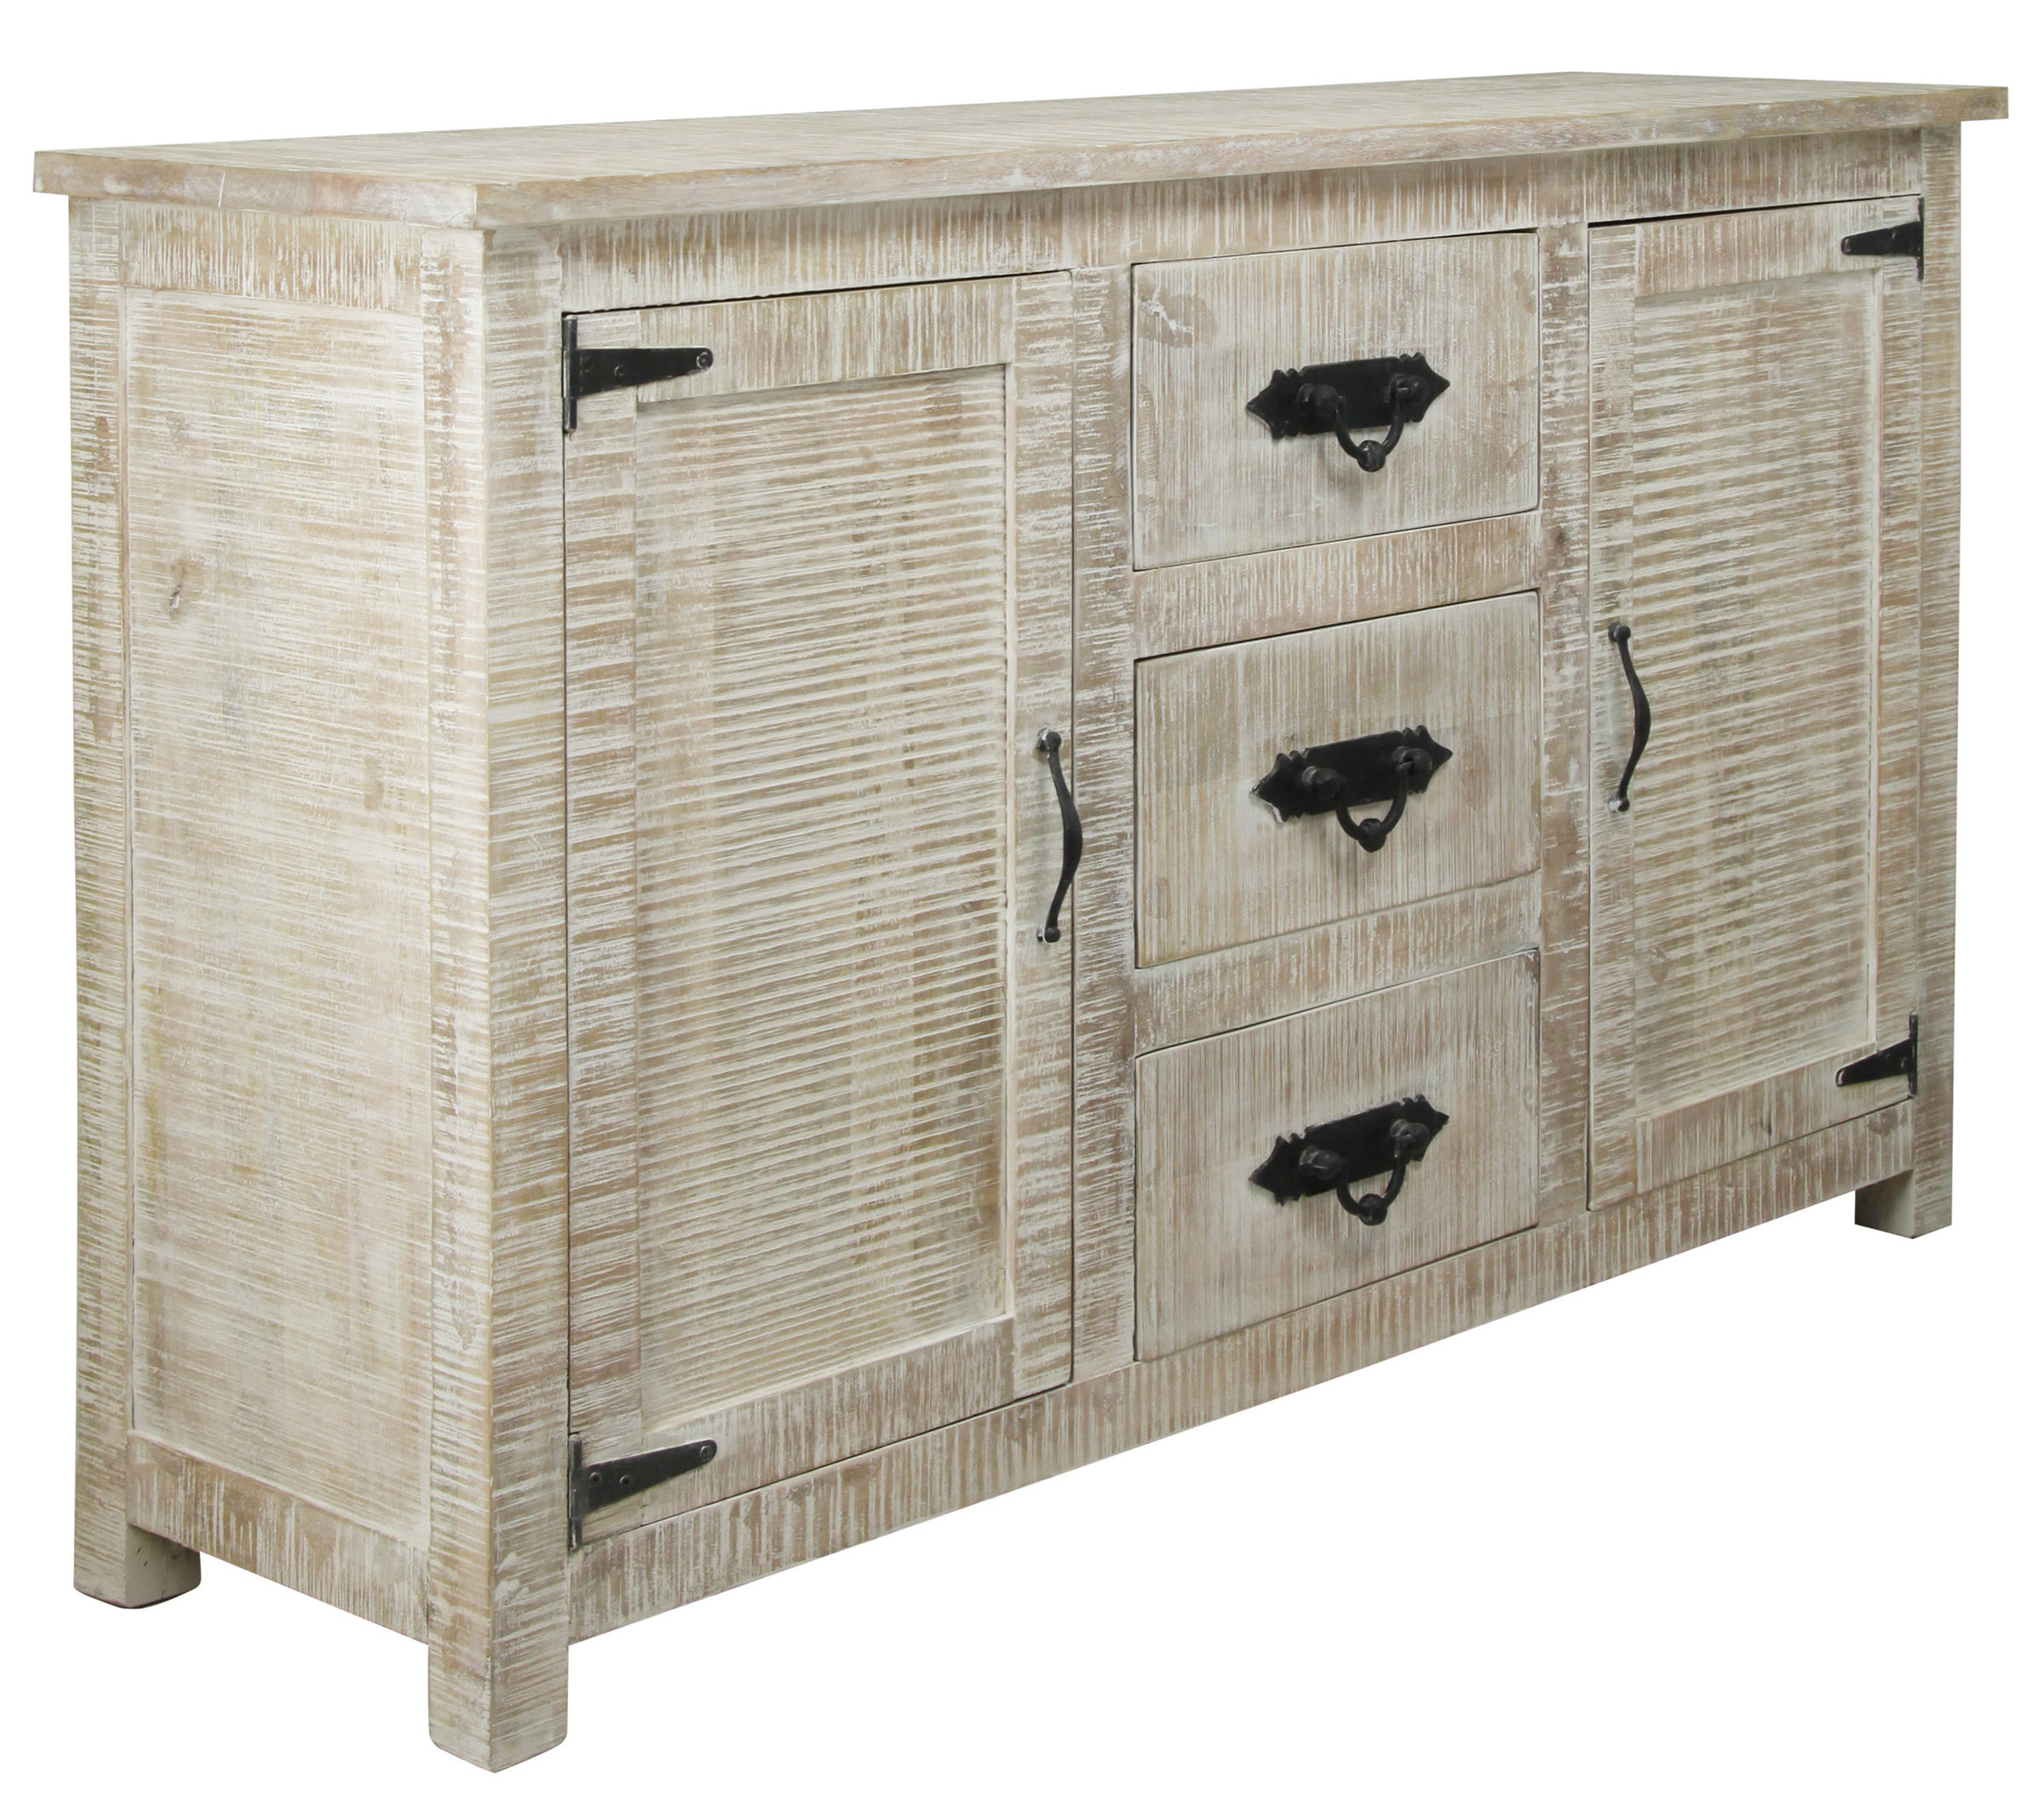 Farmhouse & Rustic Laurel Foundry Modern Farmhouse With Langsa Sideboards (View 20 of 20)